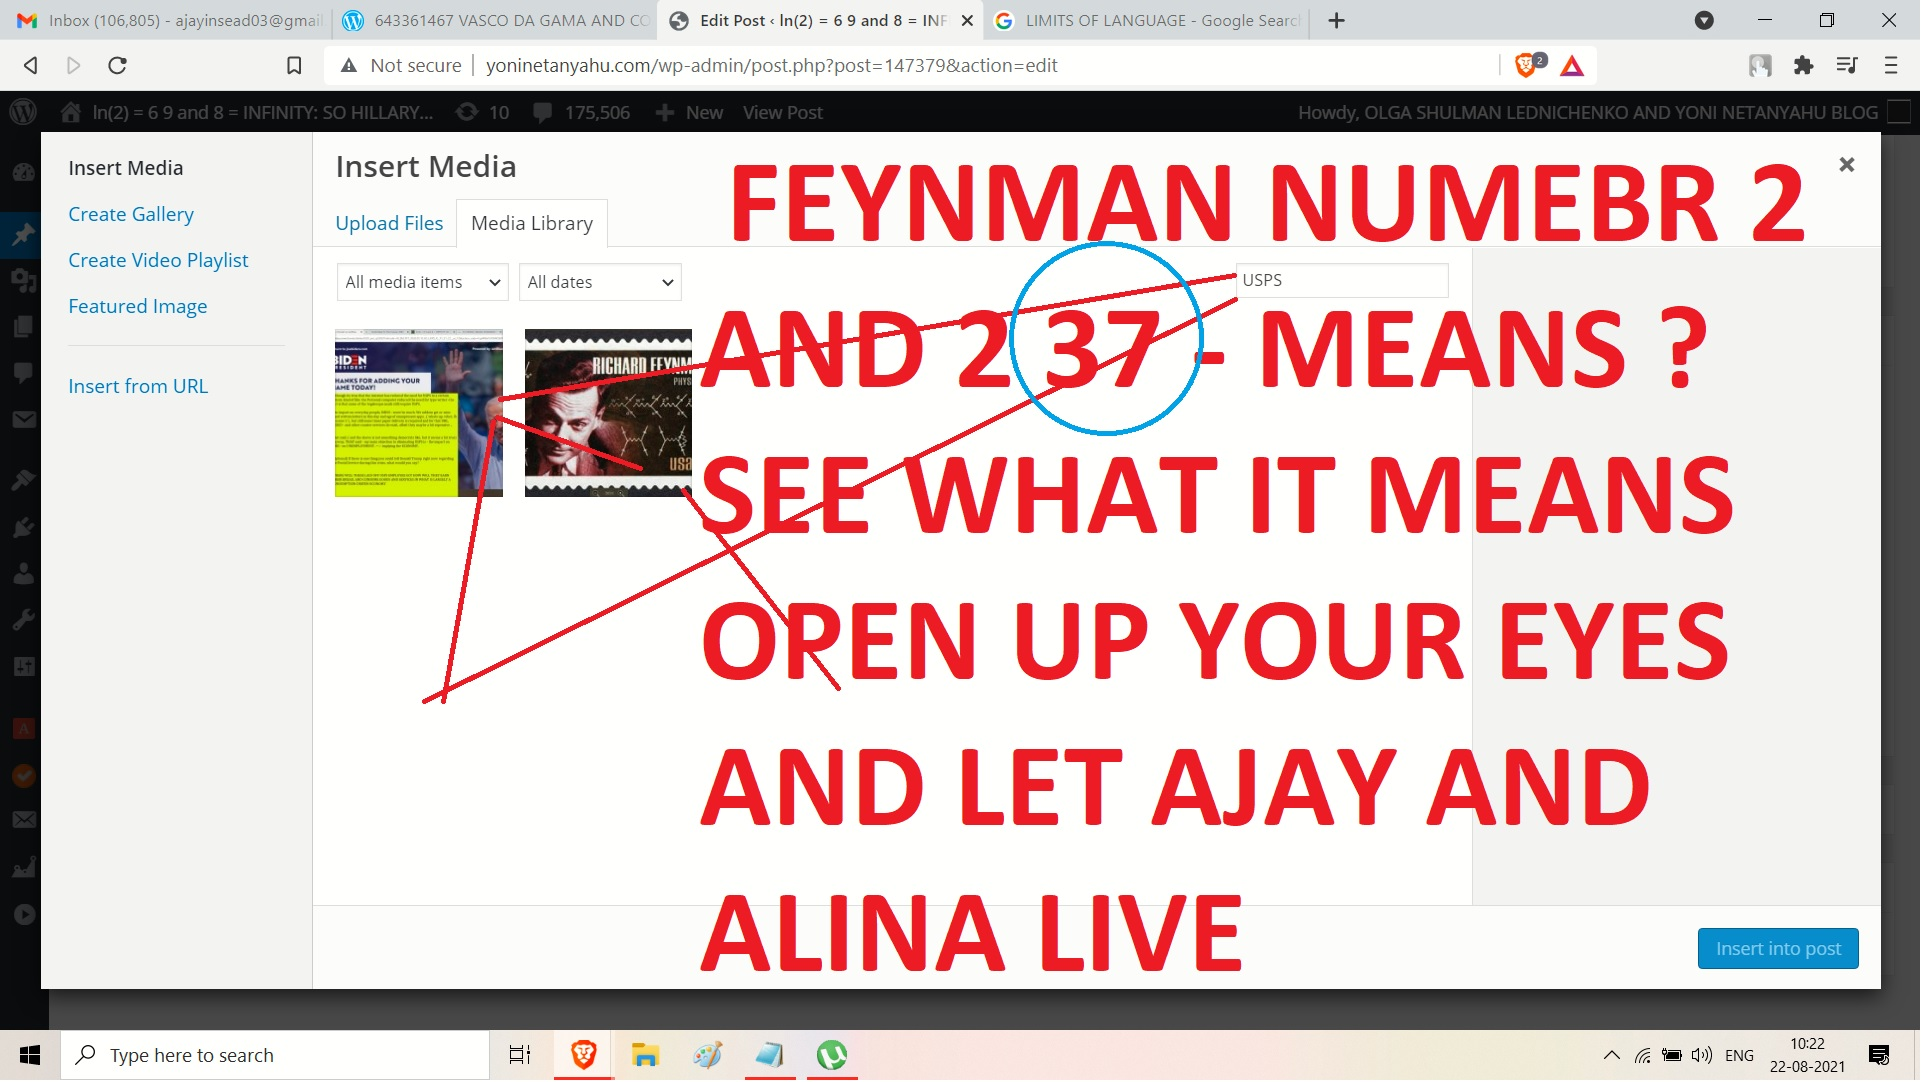 FEYNMAN NUMBER 2 LETTERS - AND 237 MENS CAMEROON - OK DAVID - AND SEE WHAT I T MENS - ND USPS AND NOW OPEN YOUR EYE S AND LETAJAY AND ALINA MATSENKO LIVE